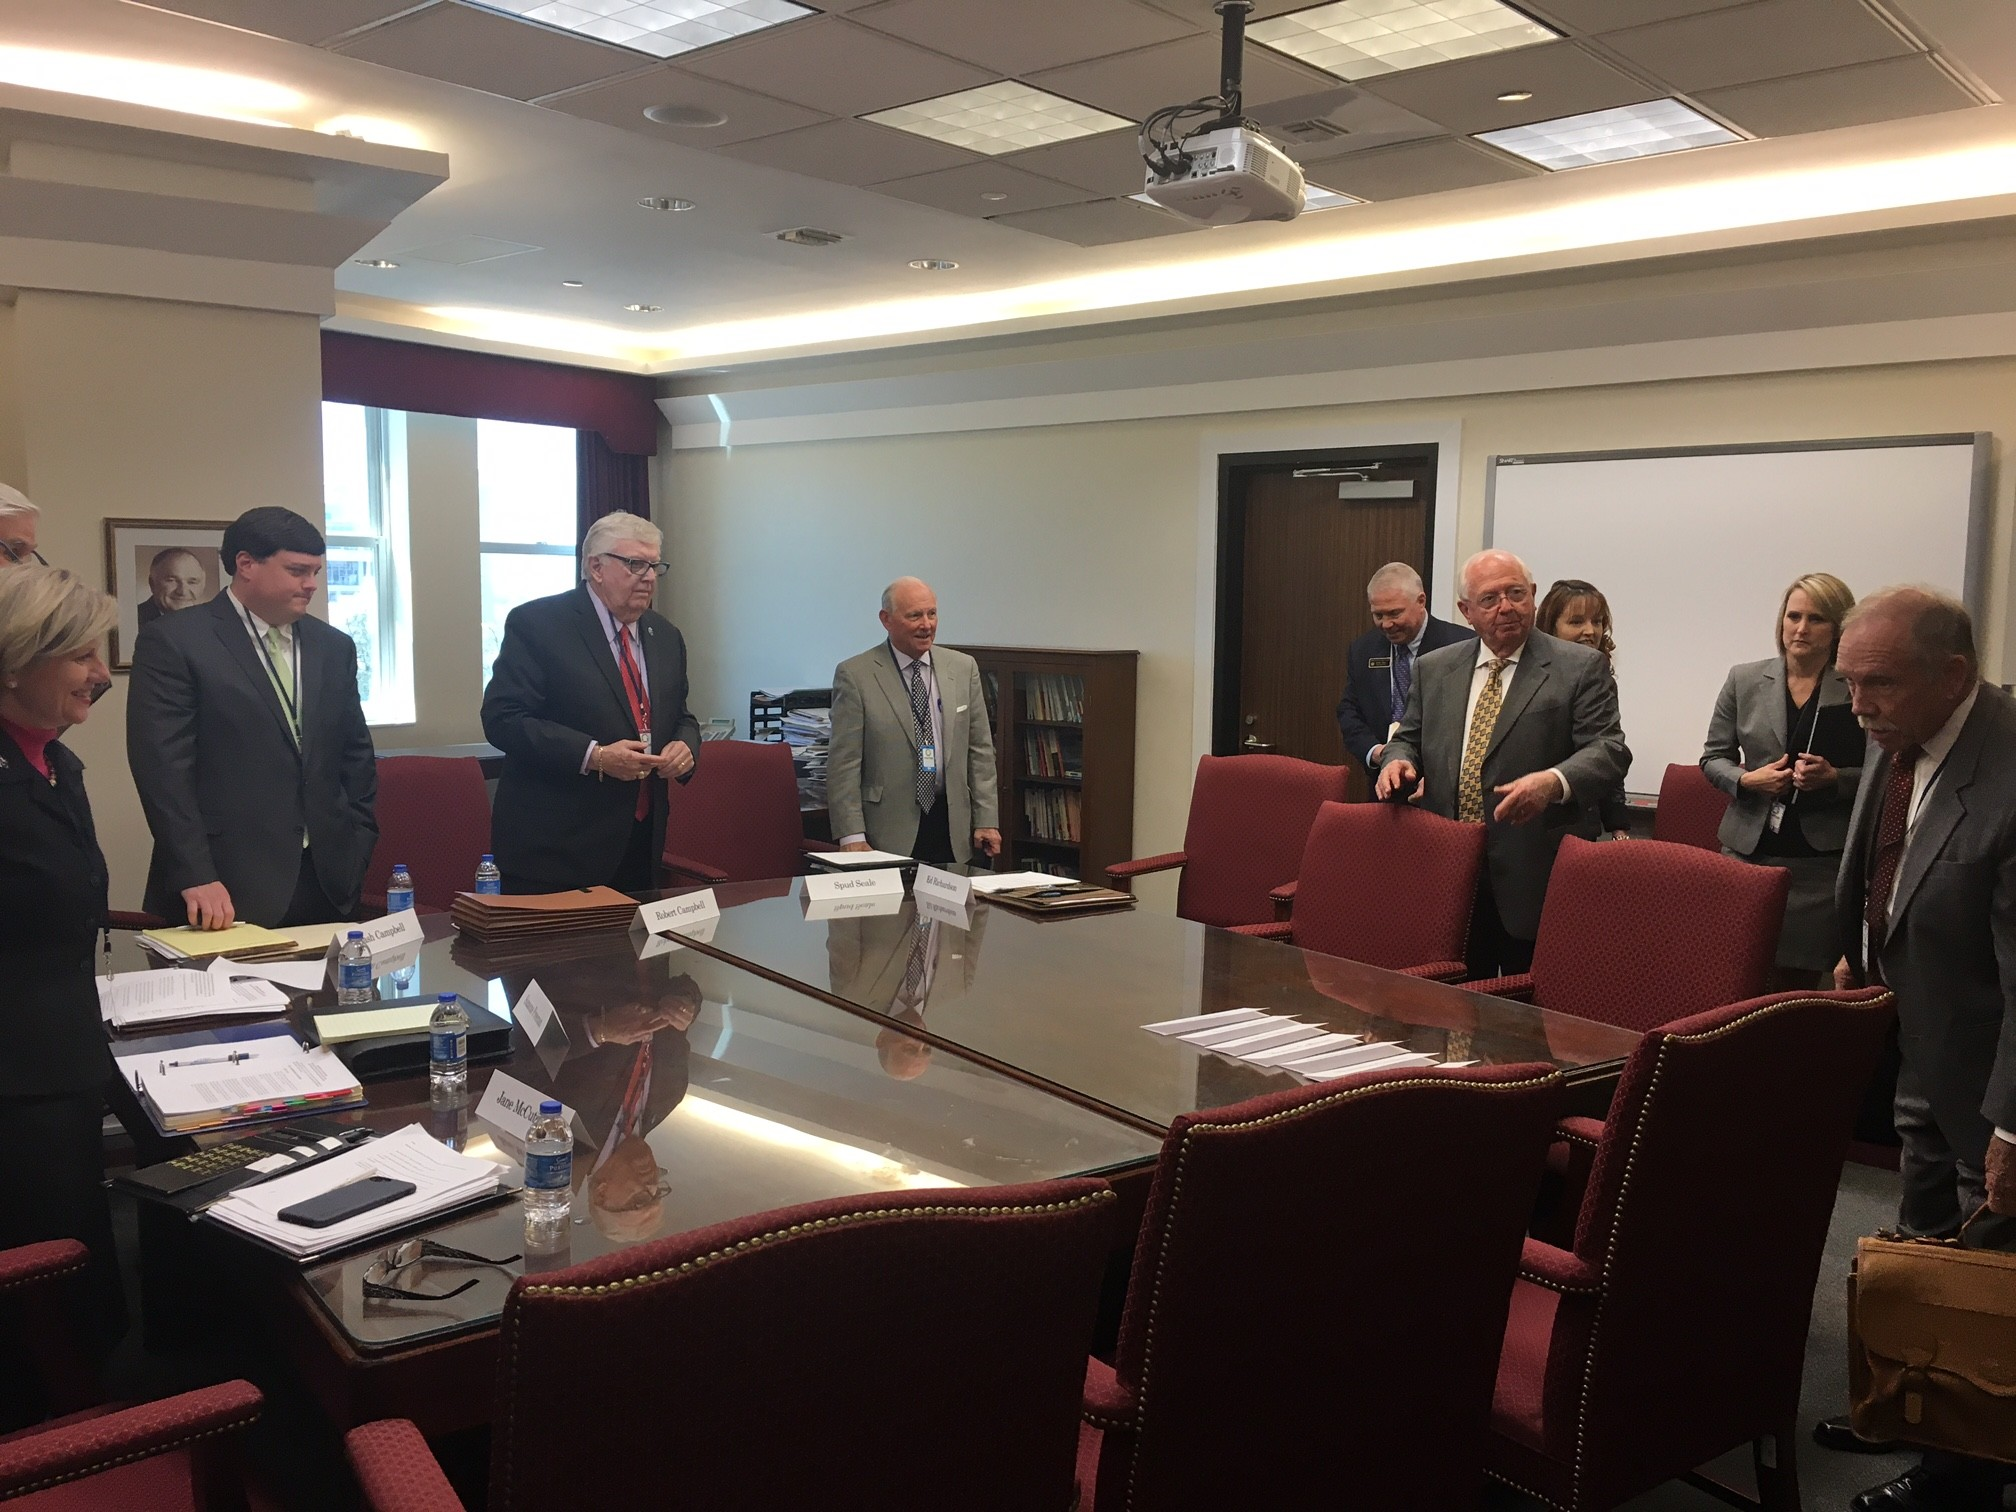 Officials from the Baldwin County School System and Gulf Shores City School System met with State Superintendent Ed Richardson Tuesday about the ongoing negotiations involved in the Gulf Shores school split.